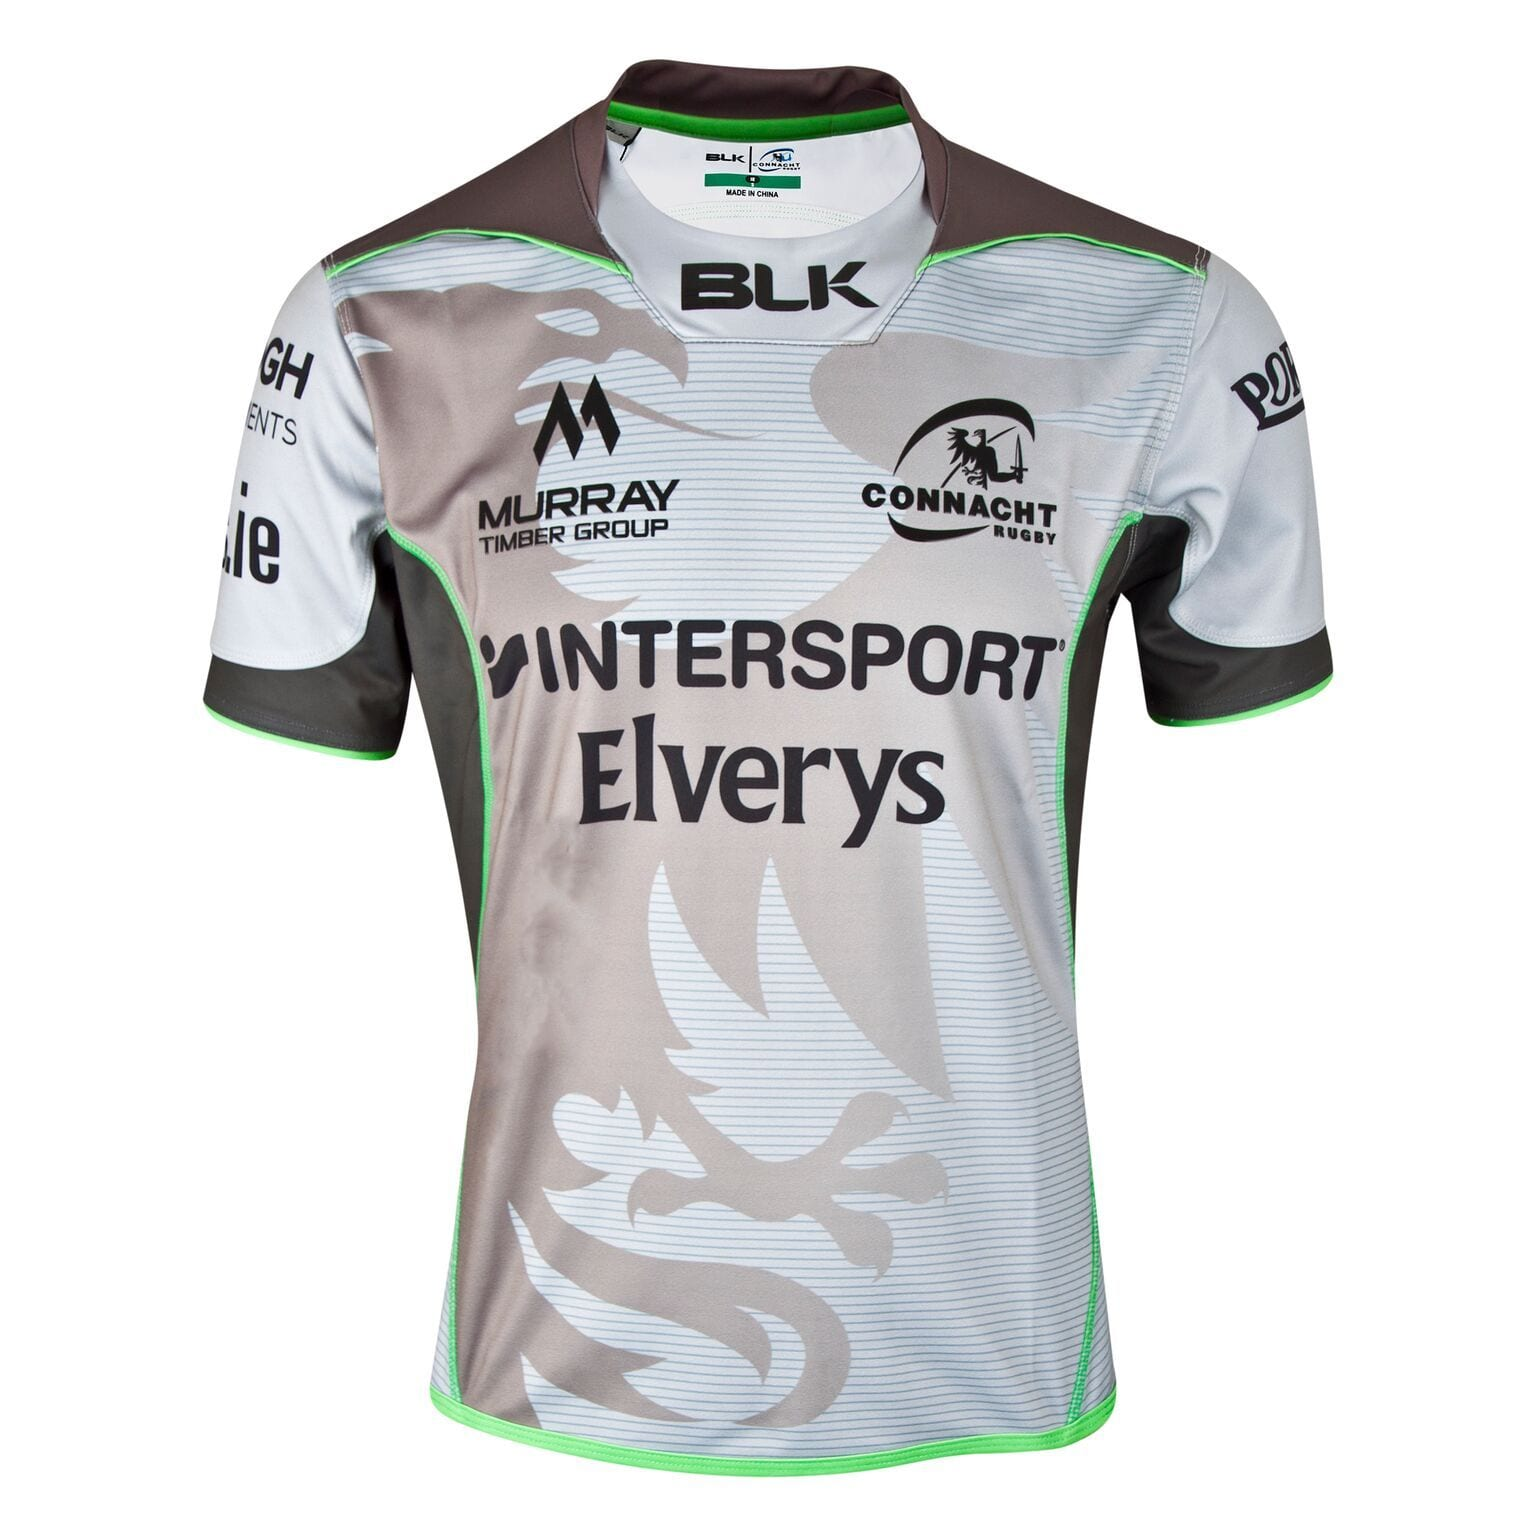 CONNACHT RUGBY: European Jersey is Unveiled